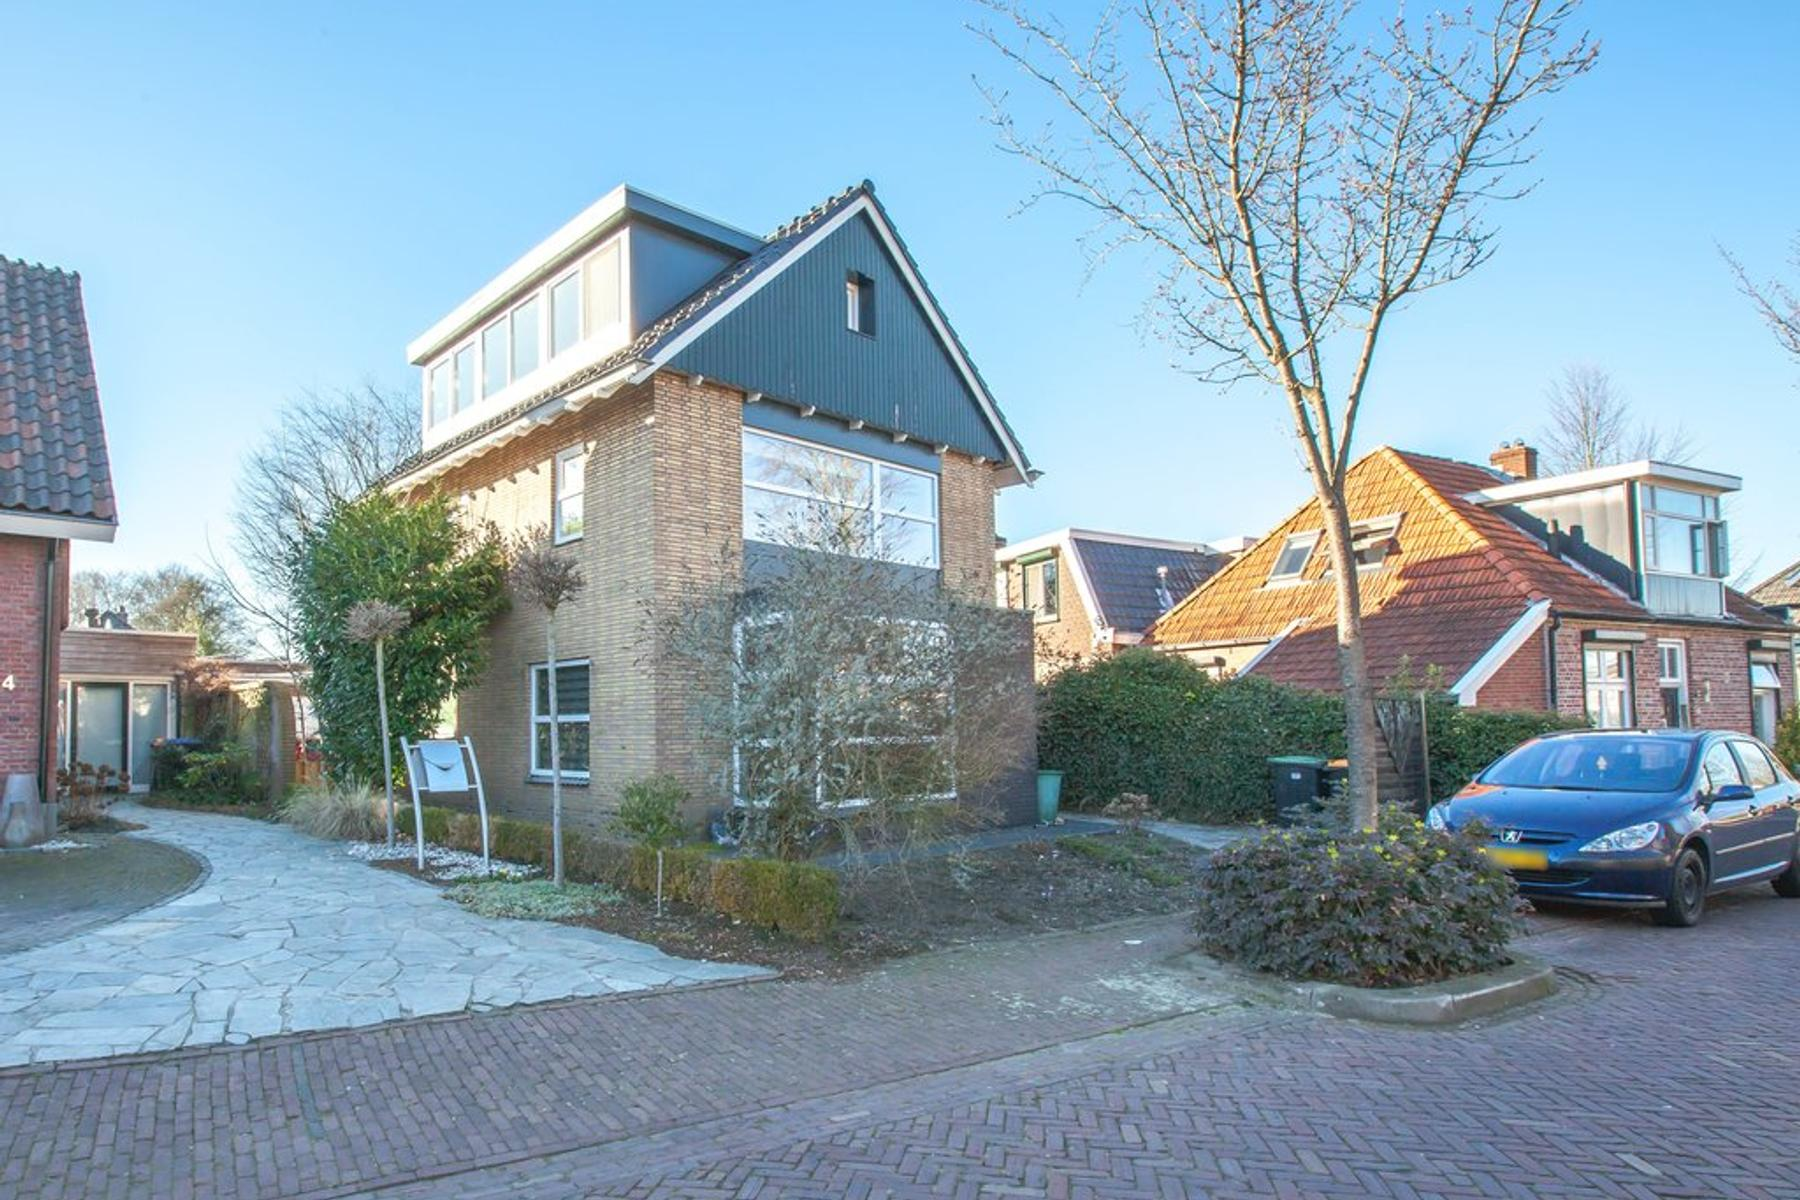 Kortestraat 2 in Winterswijk 7101 JE